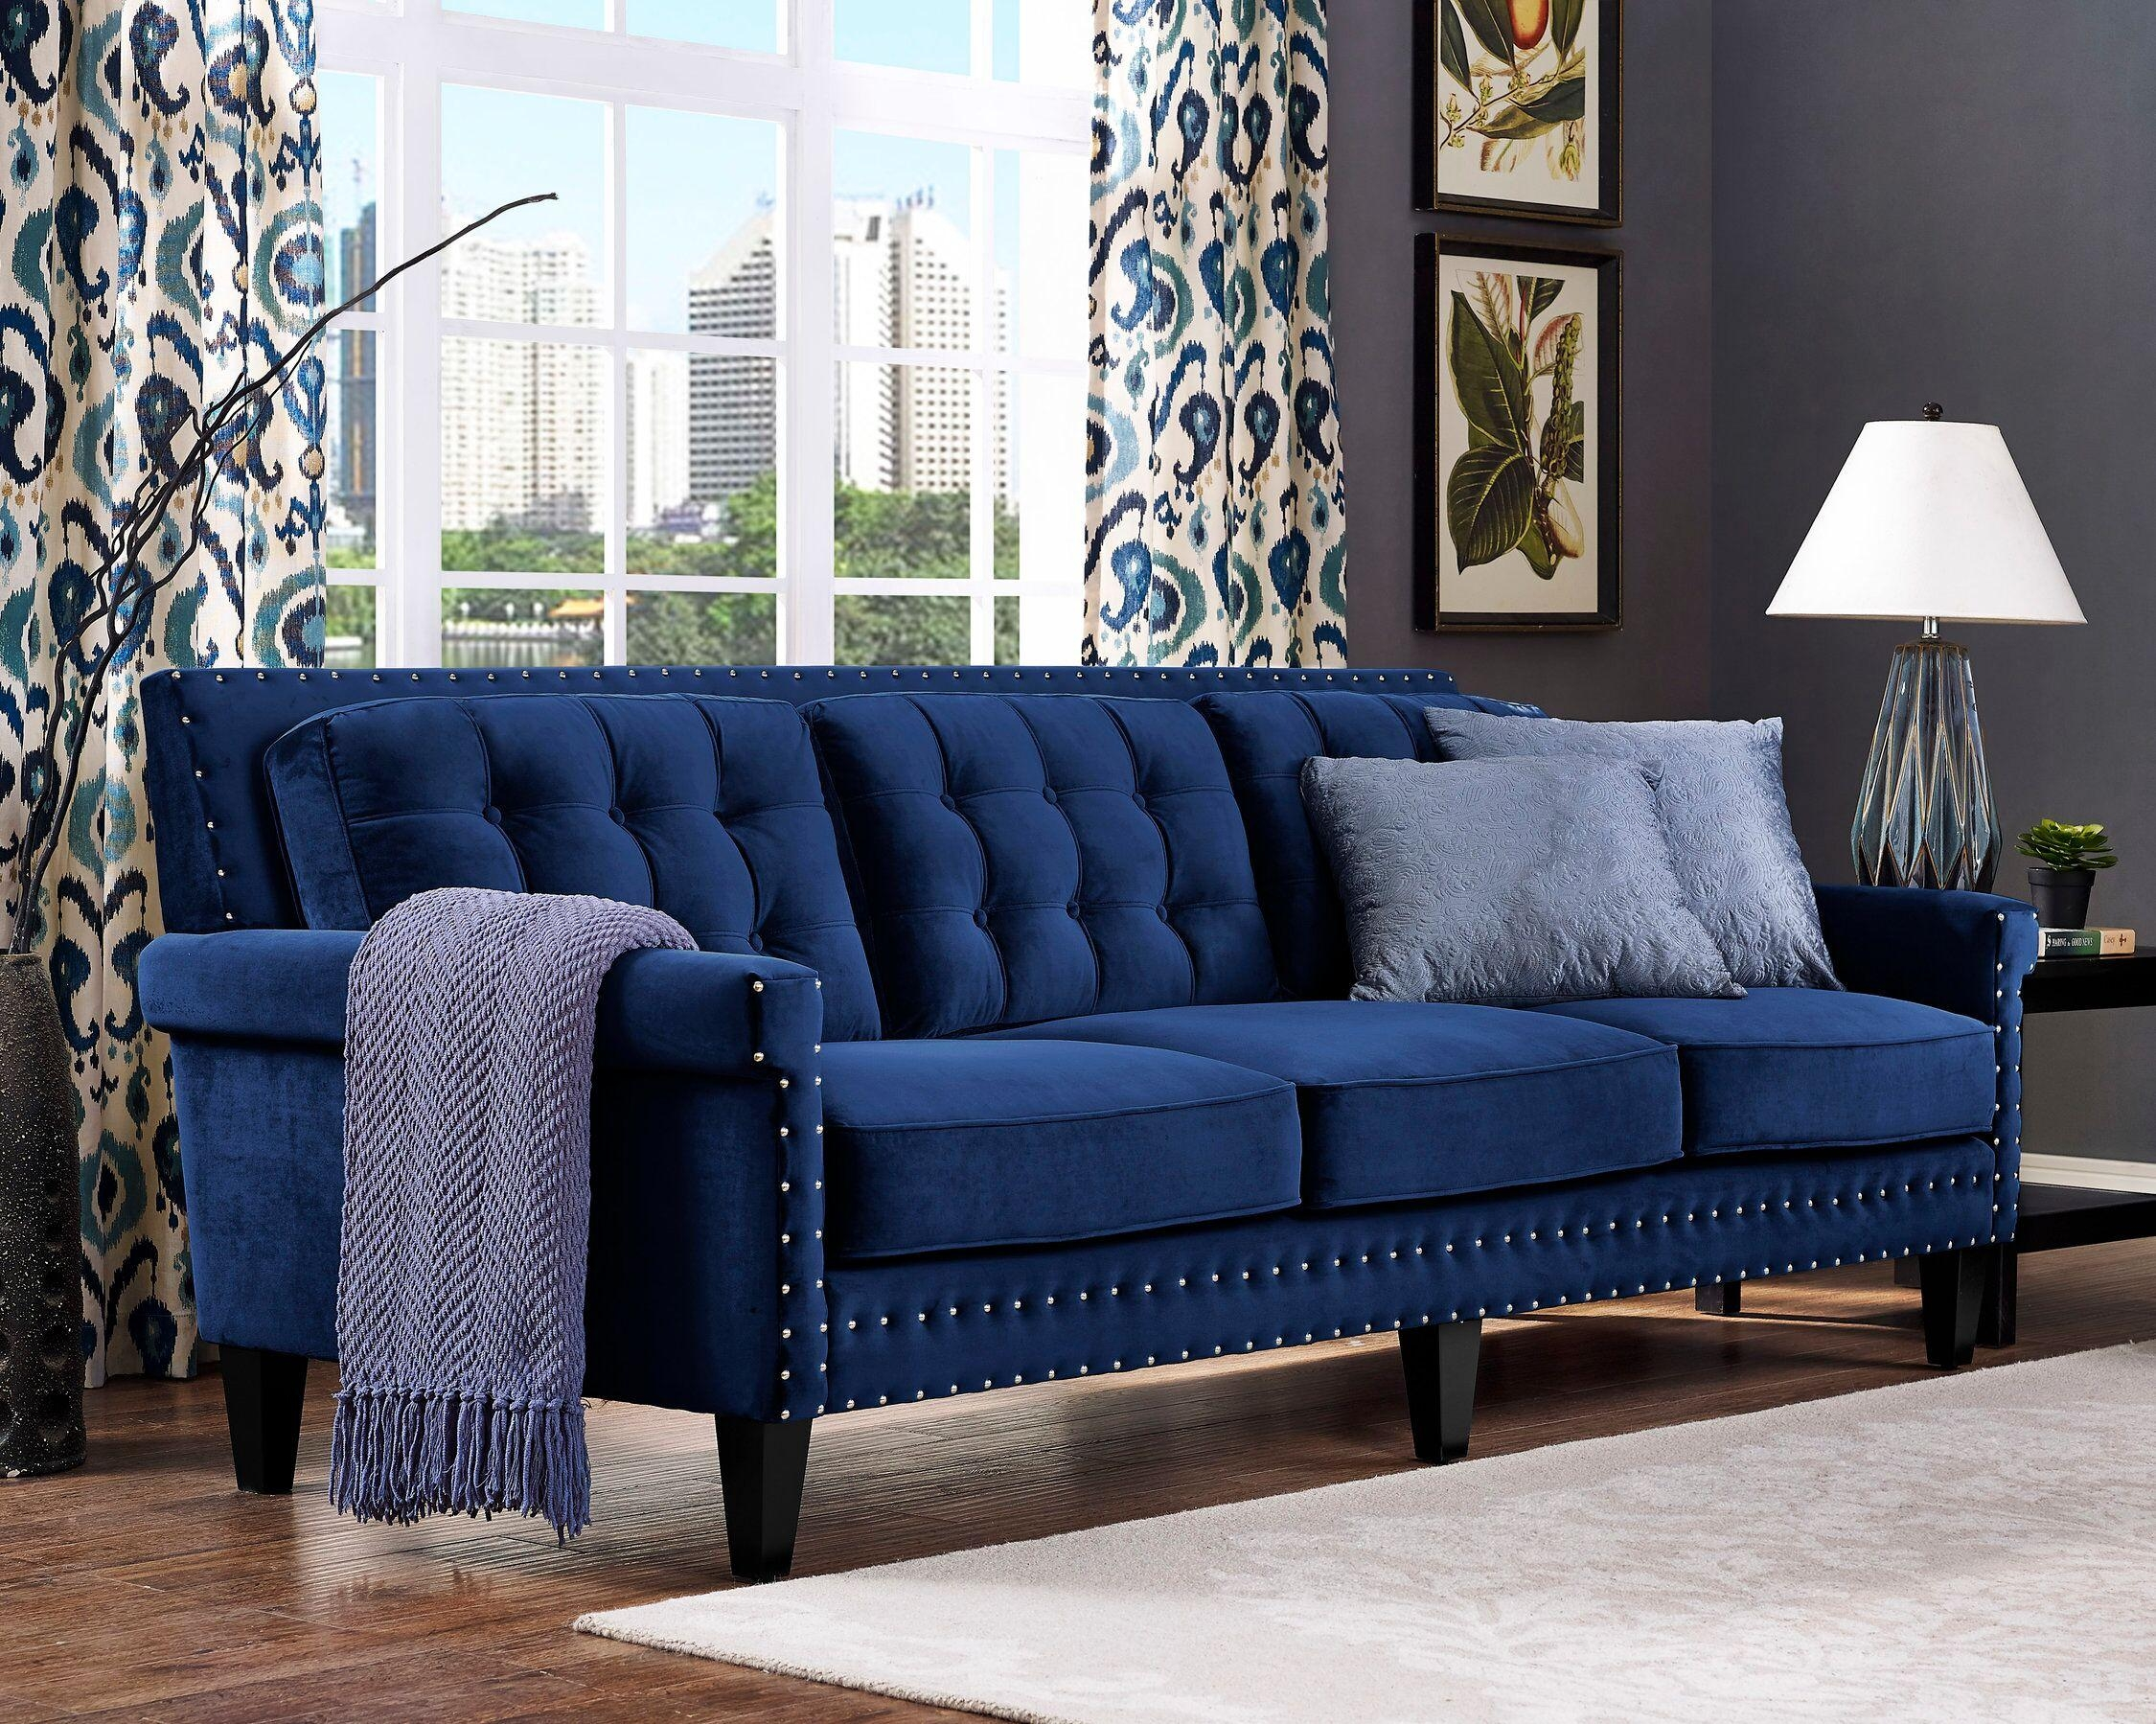 2018 Latest Blue Velvet Tufted Sofas Sofa Ideas